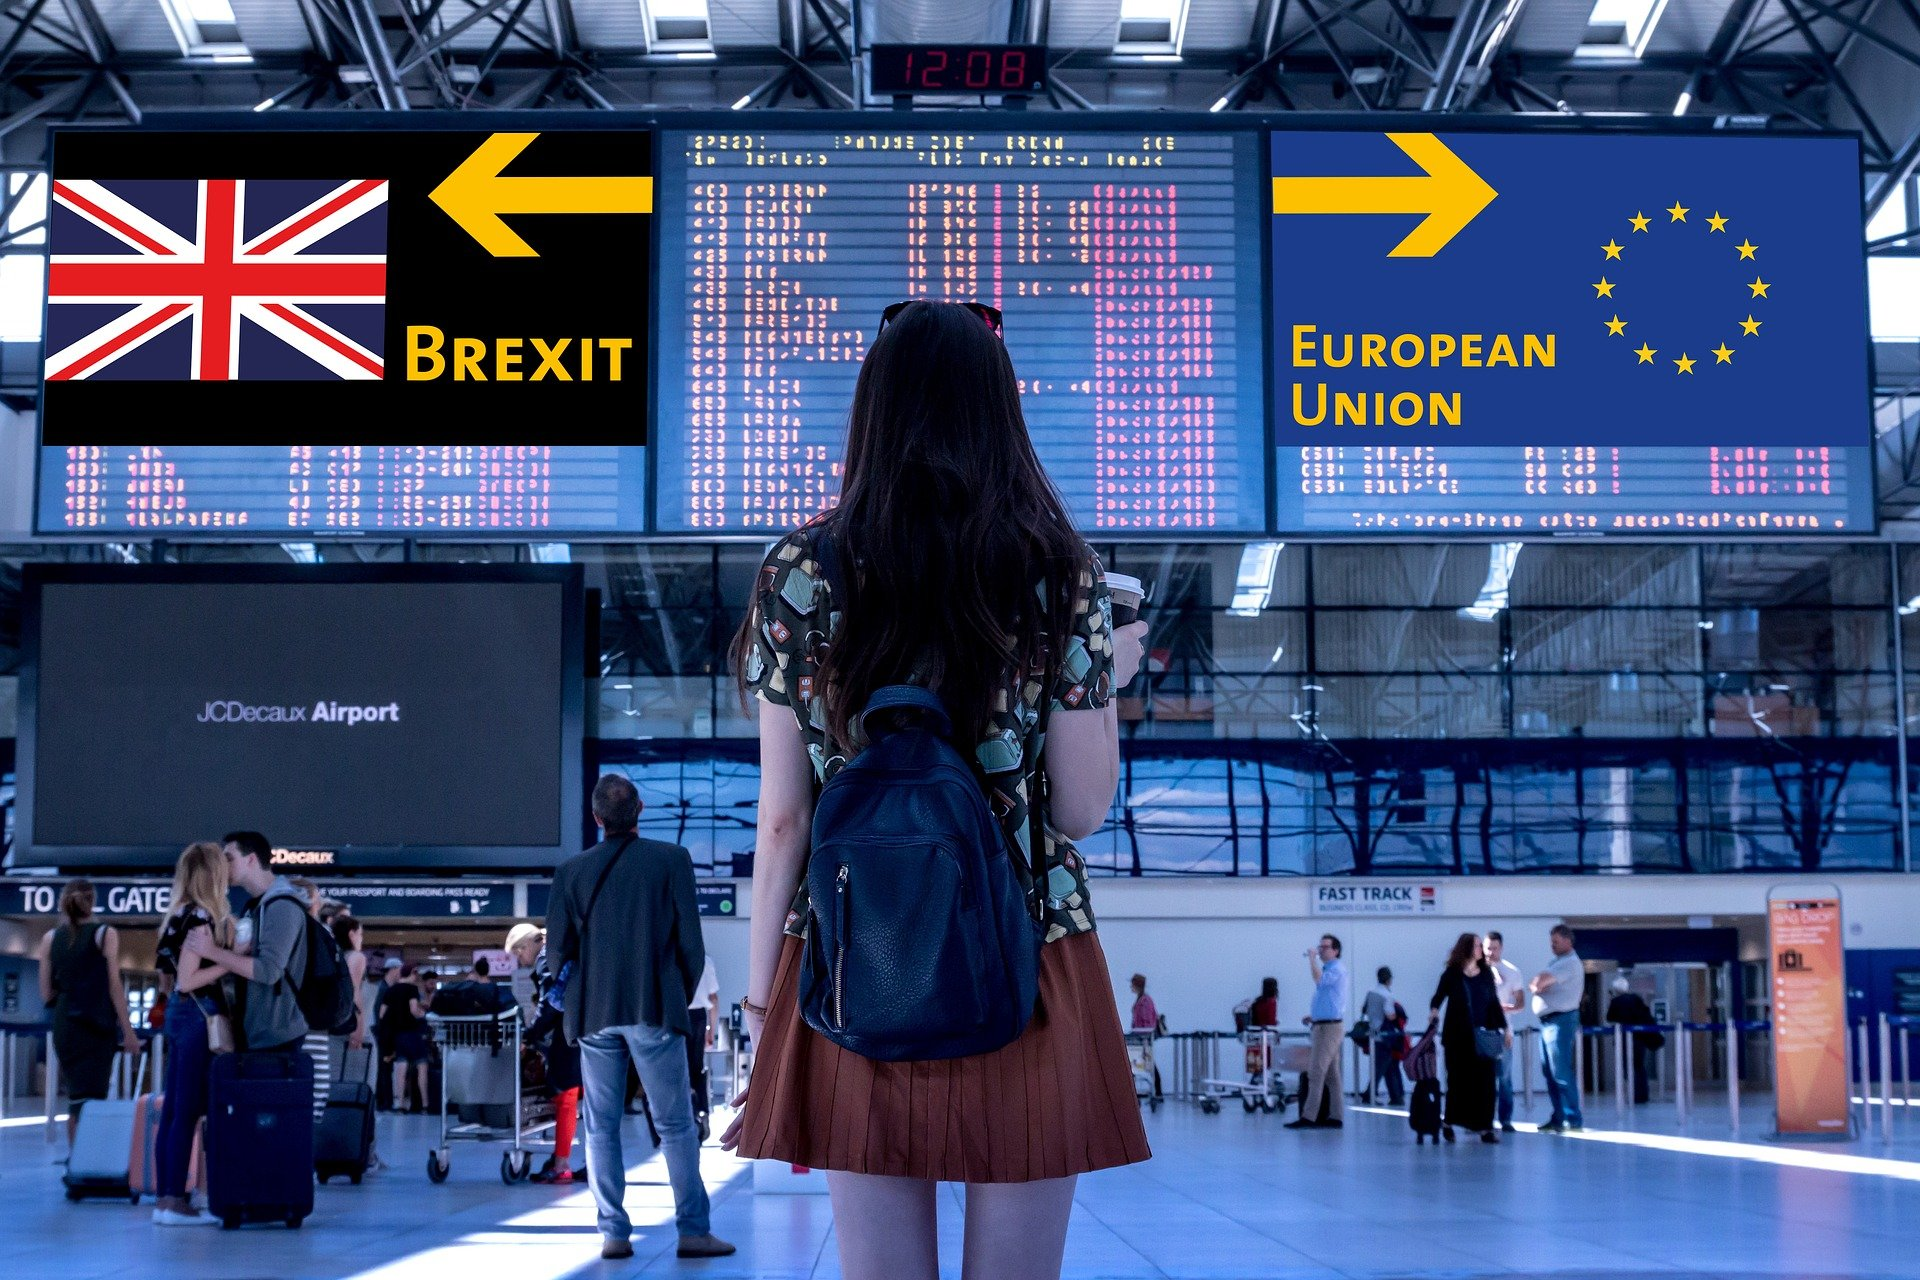 Fuel Cards UK: How does Brexit affect travel?